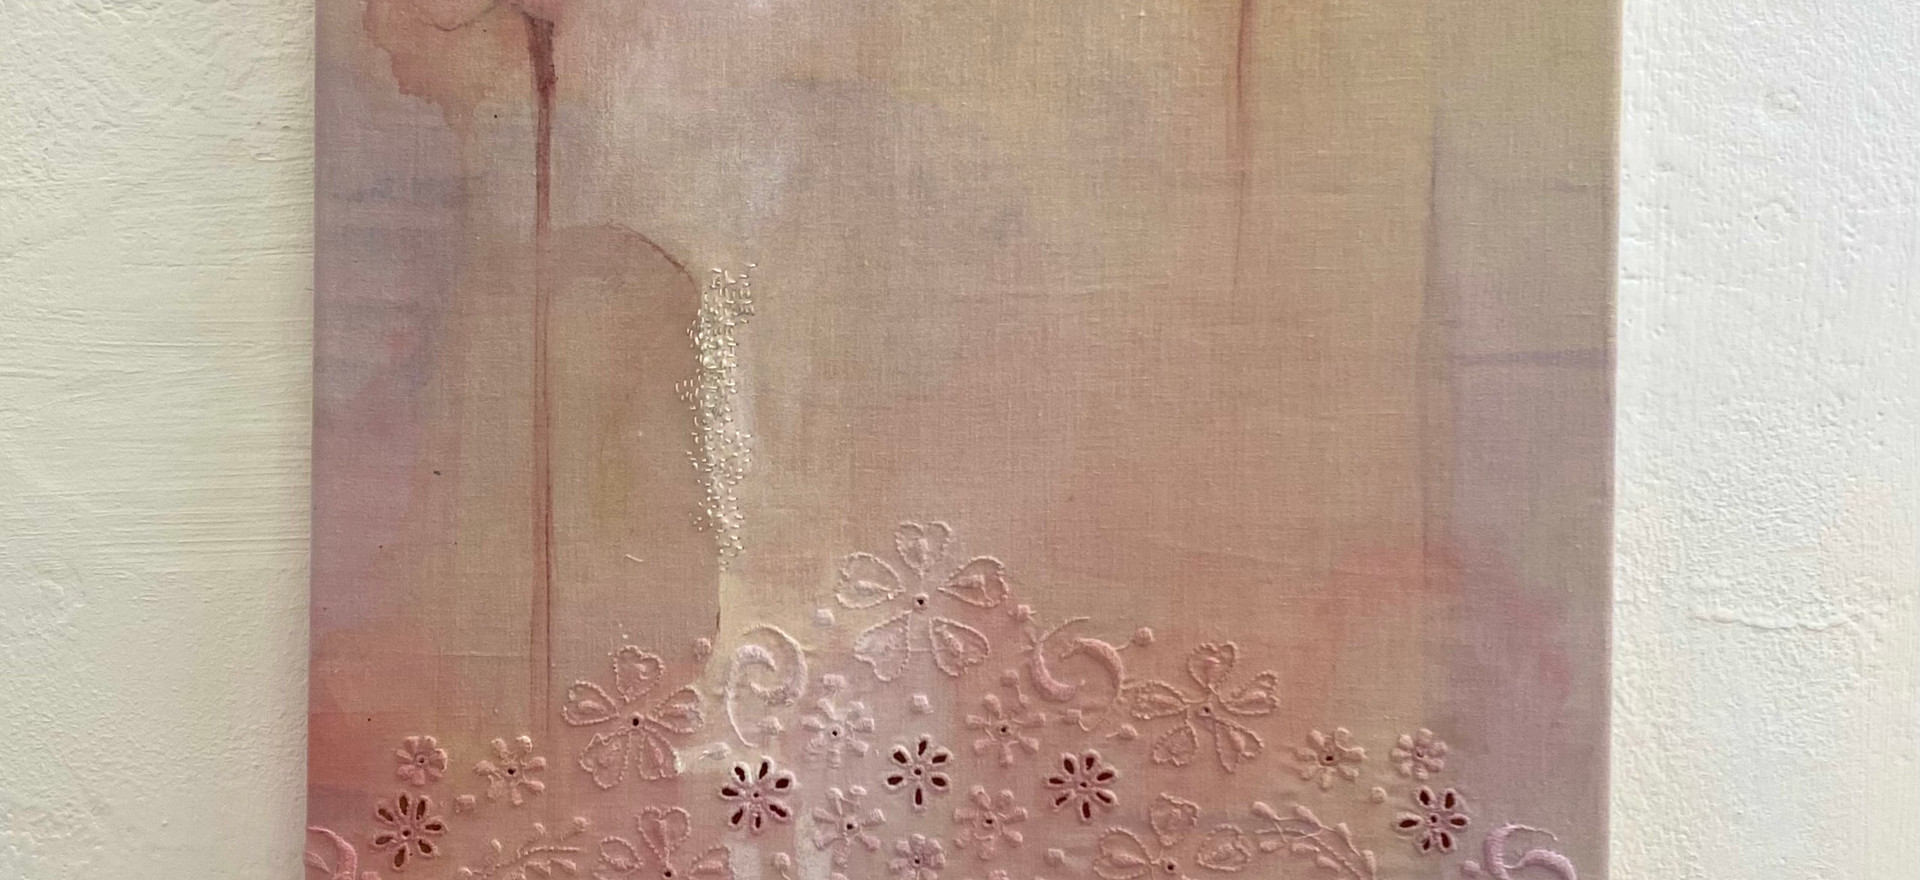 Rituals of care - ink and natural pigments on reclaimed mended linen